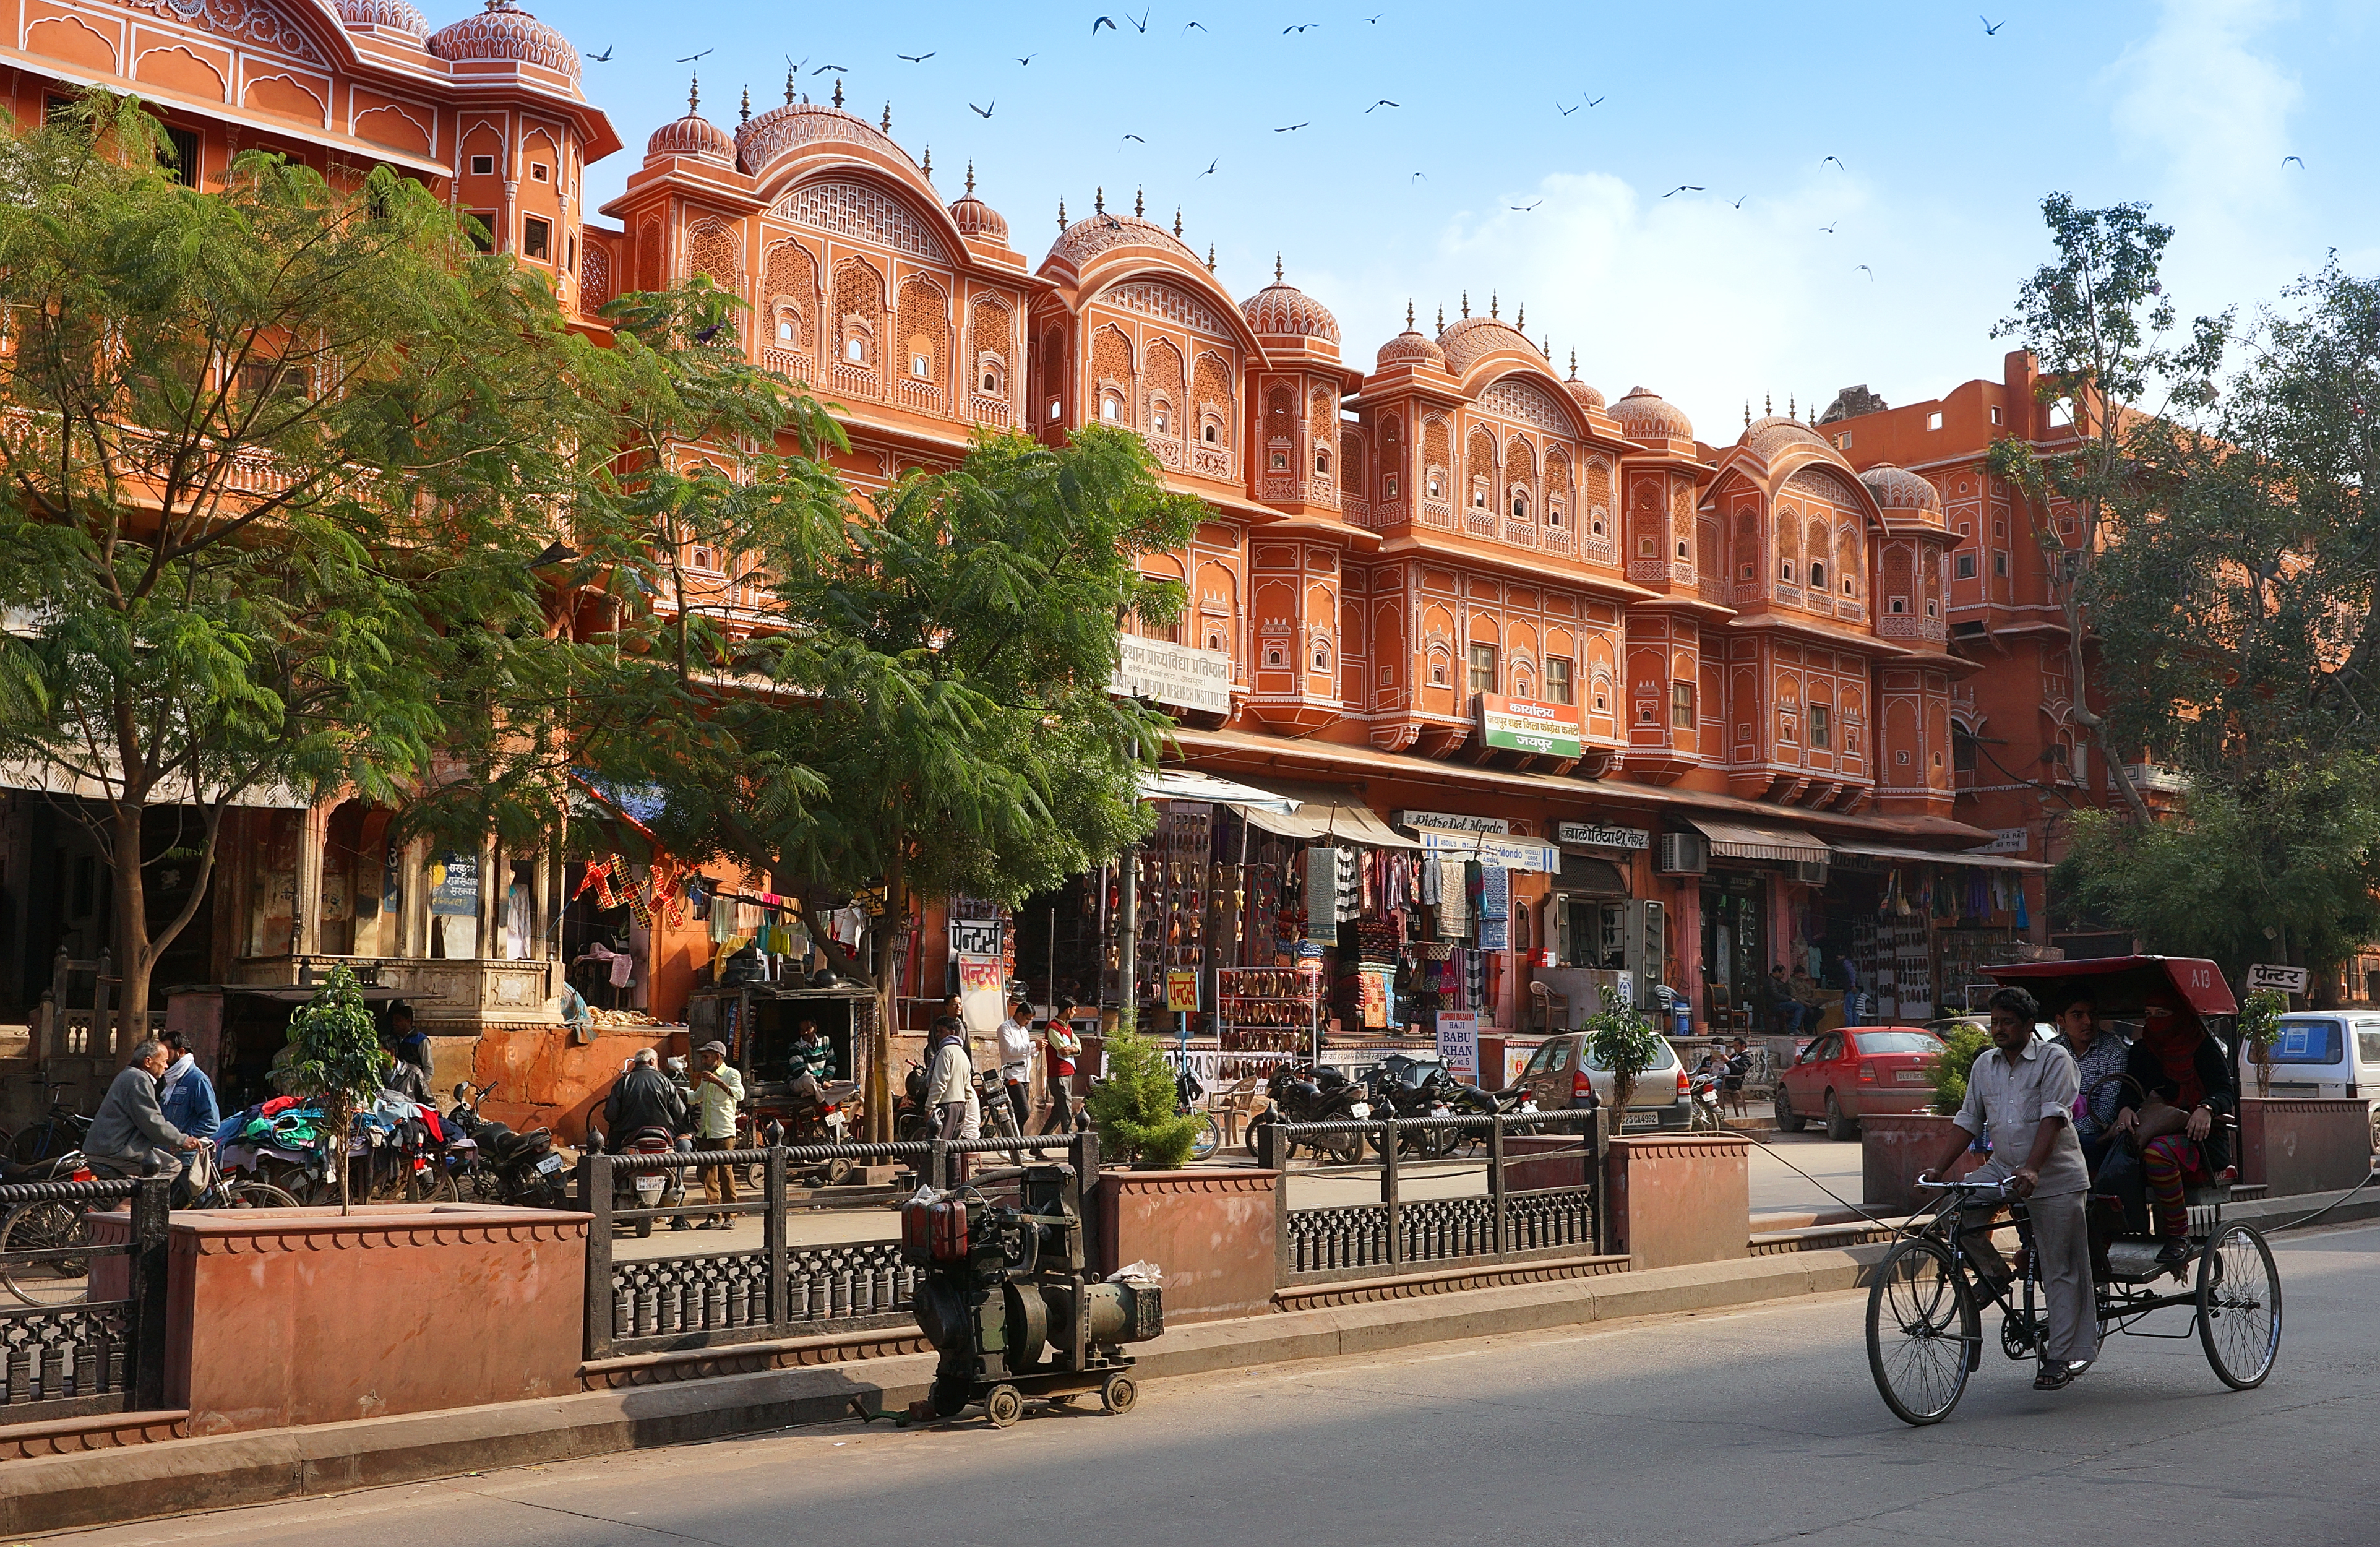 Jaipur, India - January 23,2014  Rickshaw riding his tricycle on the street in front of Hawa Mahal,